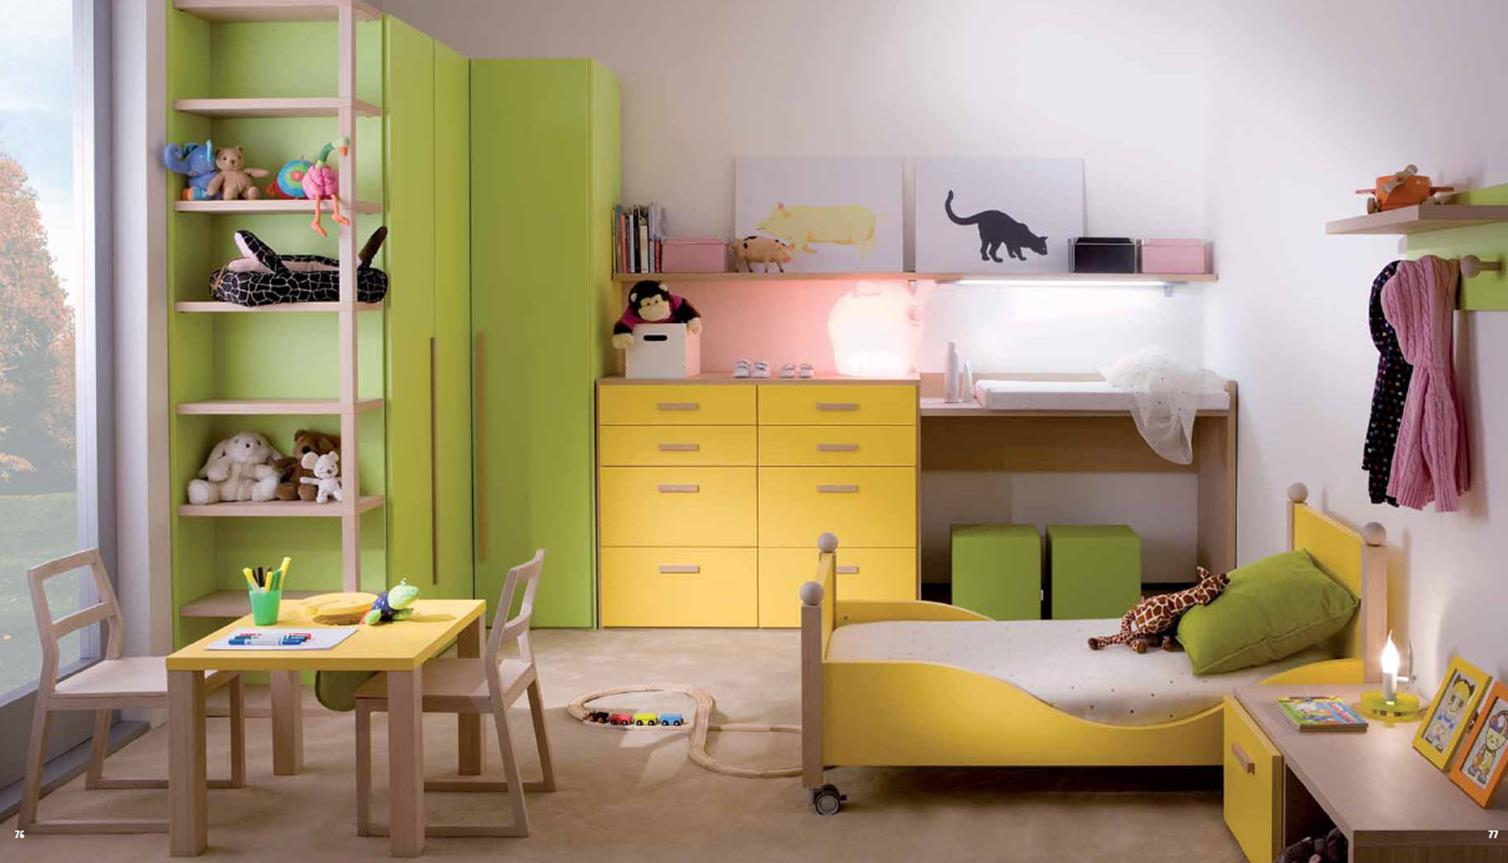 Color Full Kids Room Decorating Ideas On A Budget 3